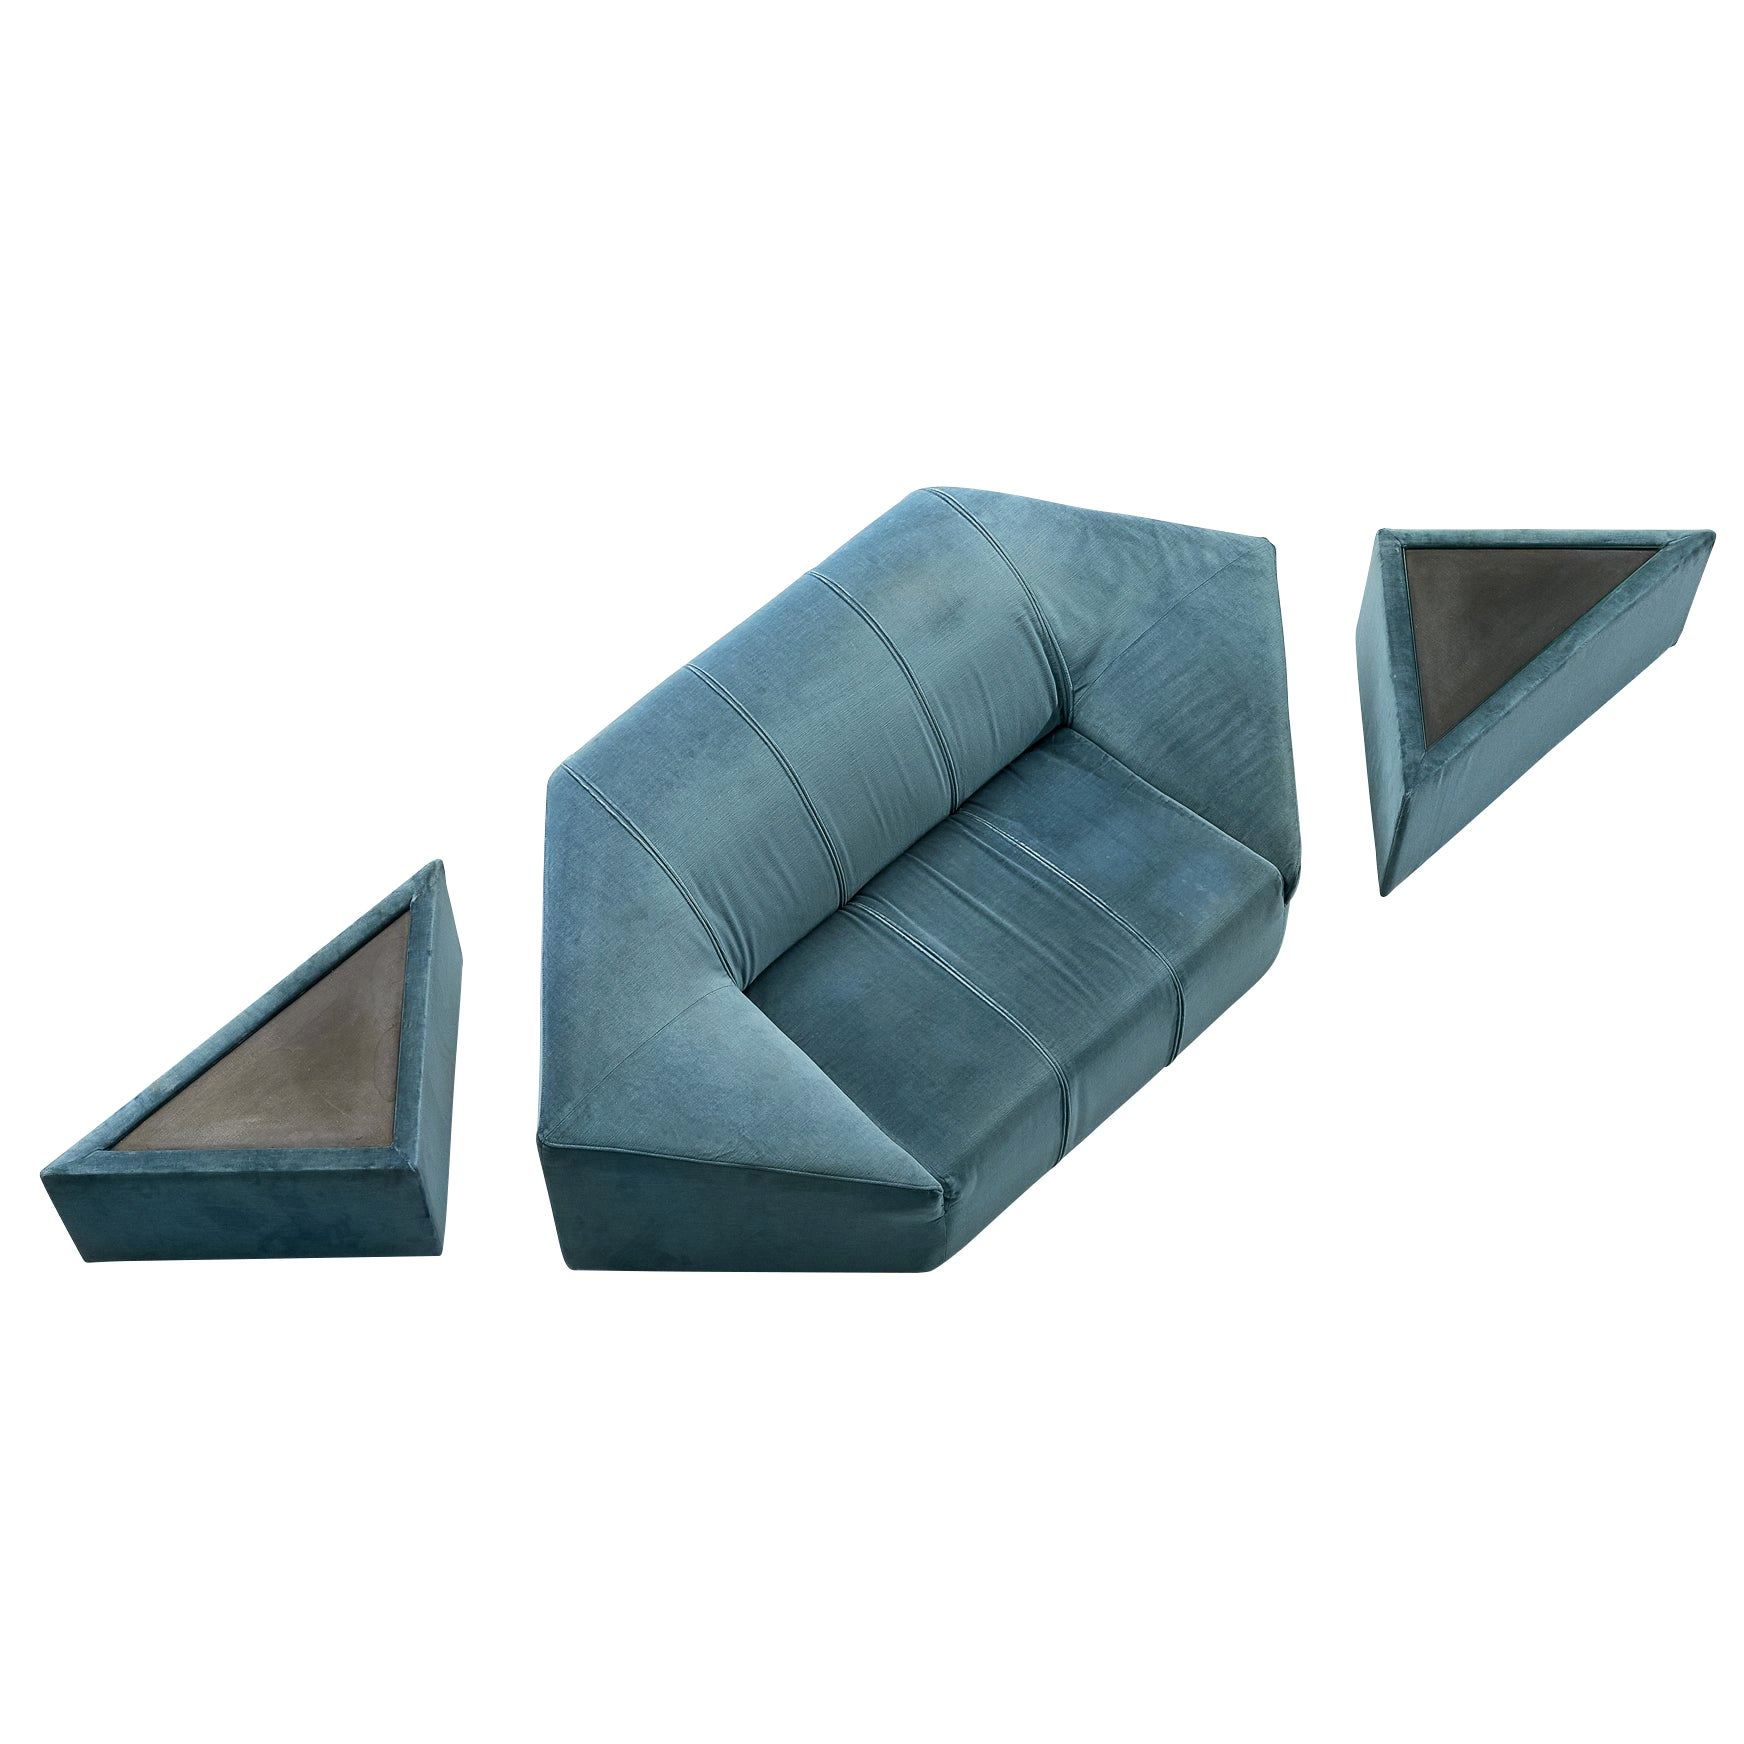 Hexagonal Sofa with Pair of Side Tables